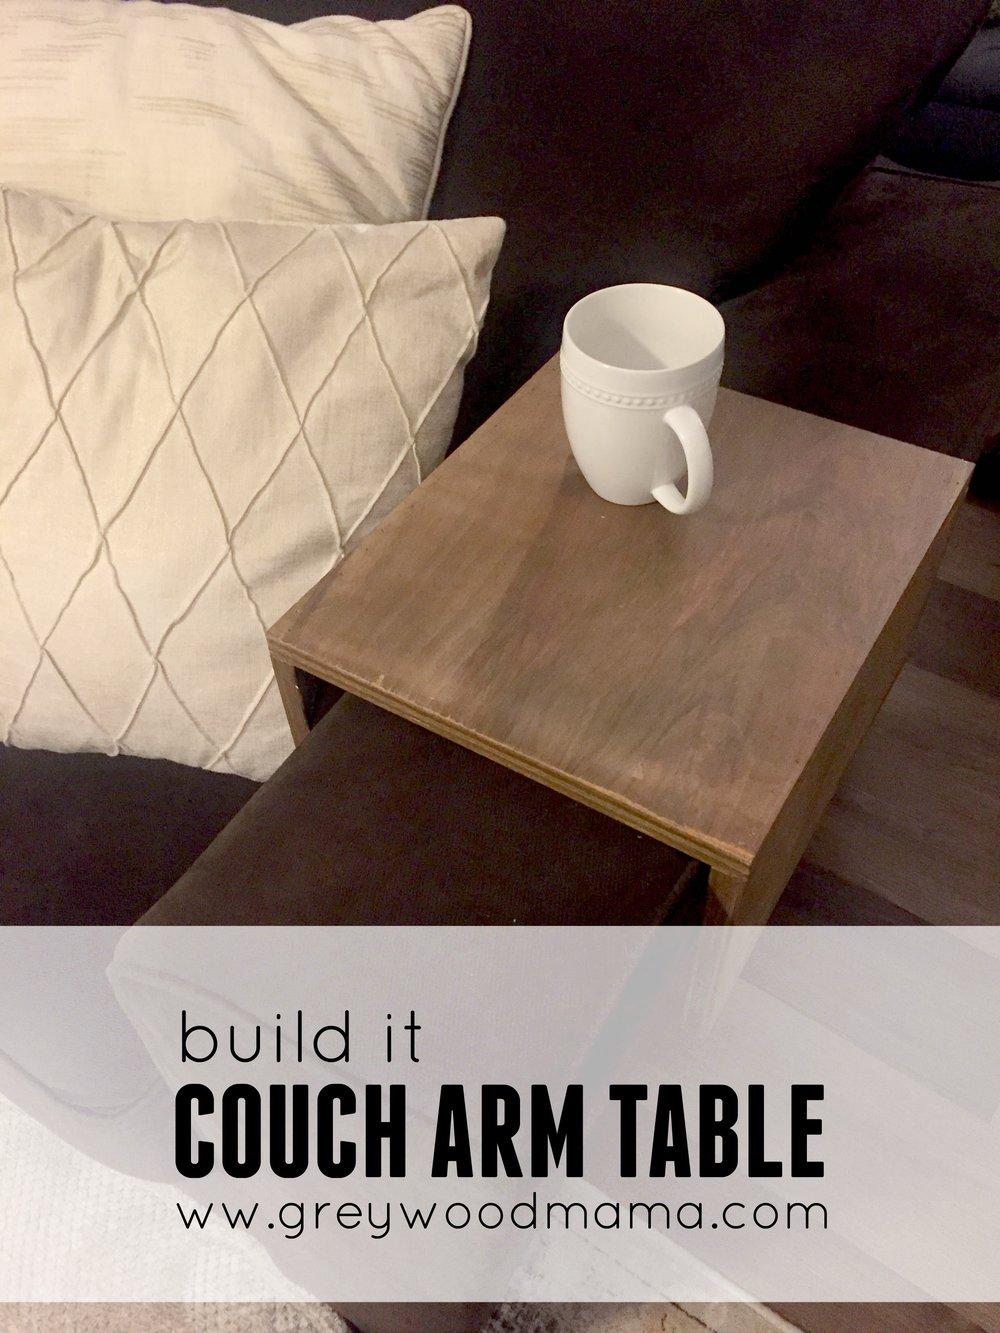 couch-arm-table_pin.jpg